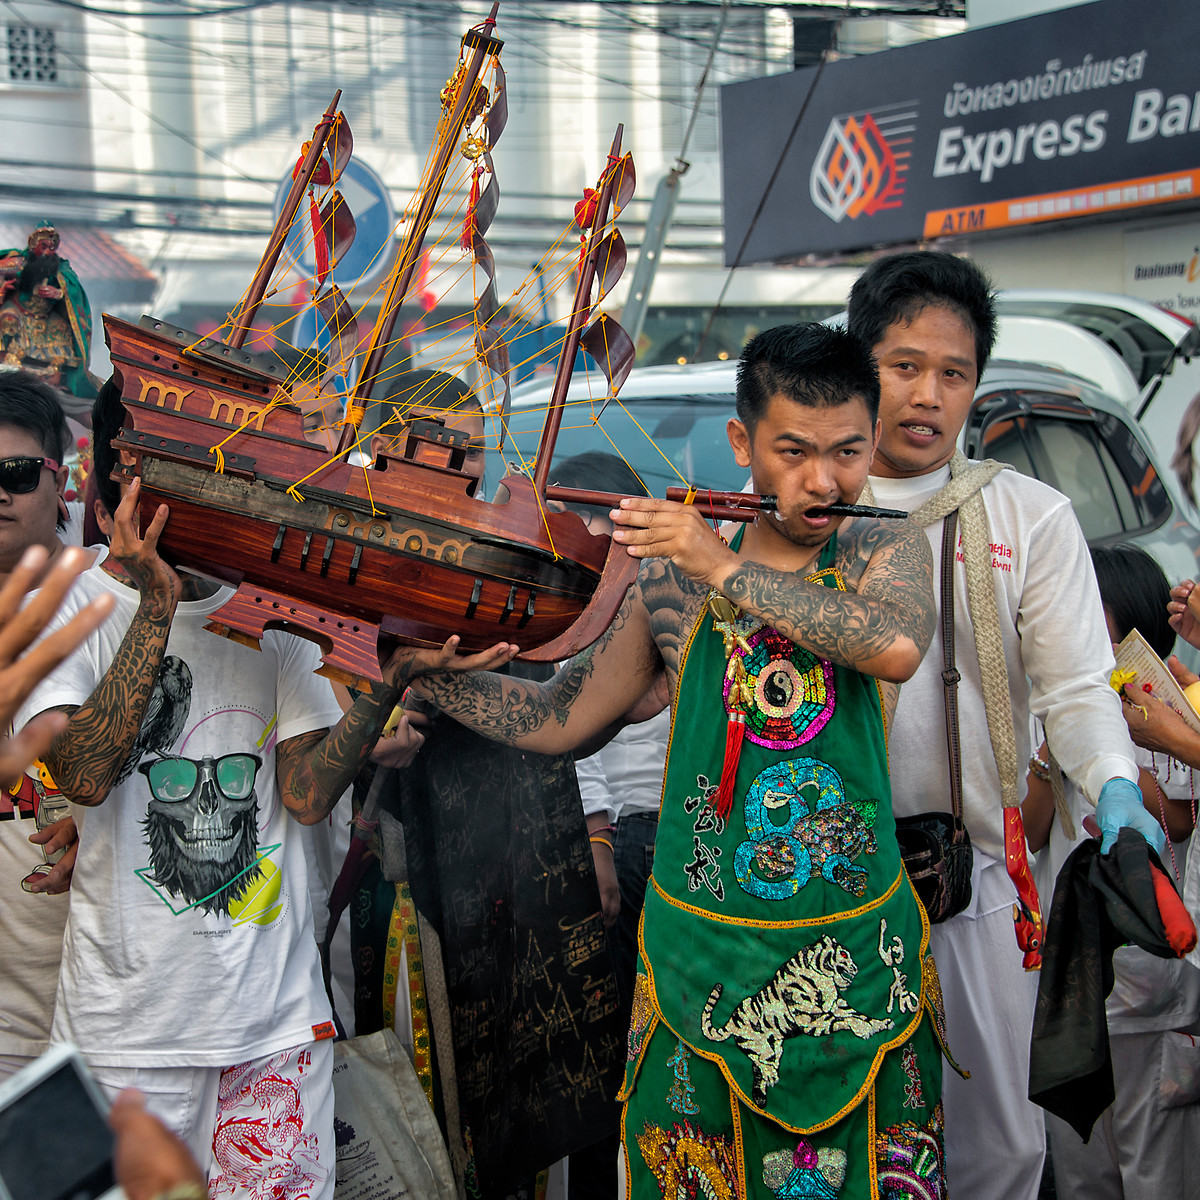 Mystic with Boat through Cheek, Phuket Vegetarian Festival, Thailand - 2015